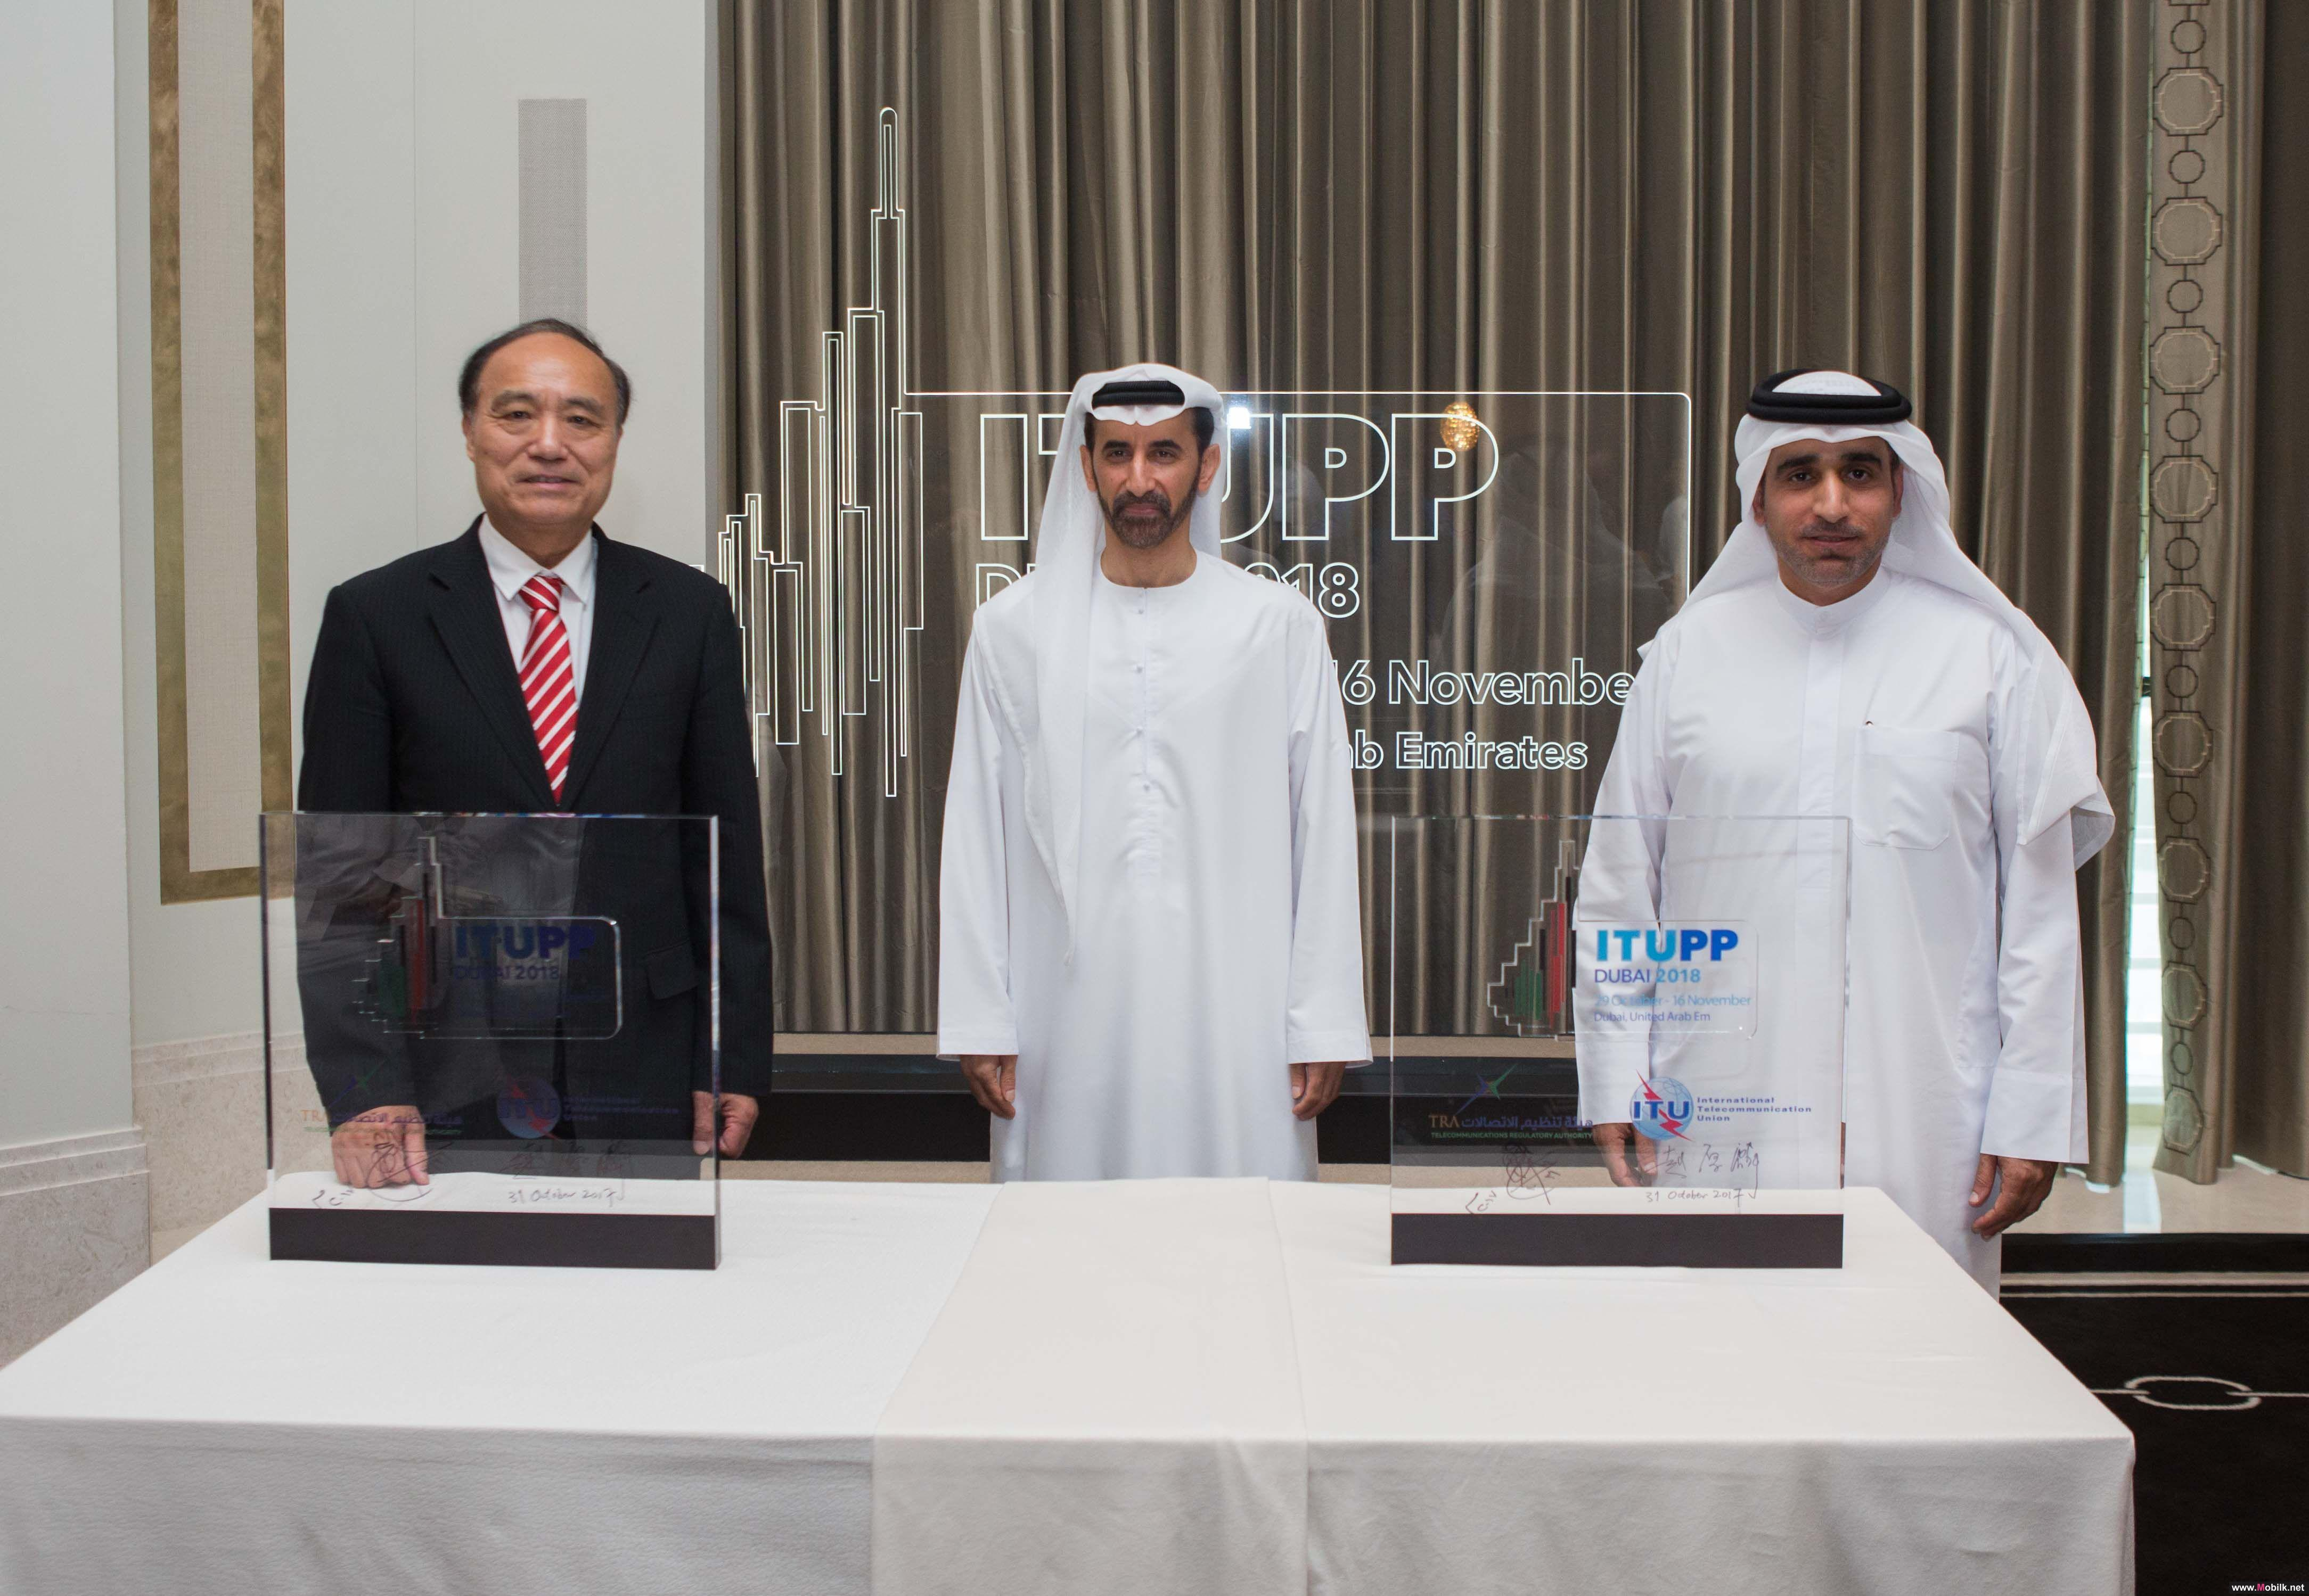 TRA Sings the Agreement of Hosting PP18 in Dubai in 2018